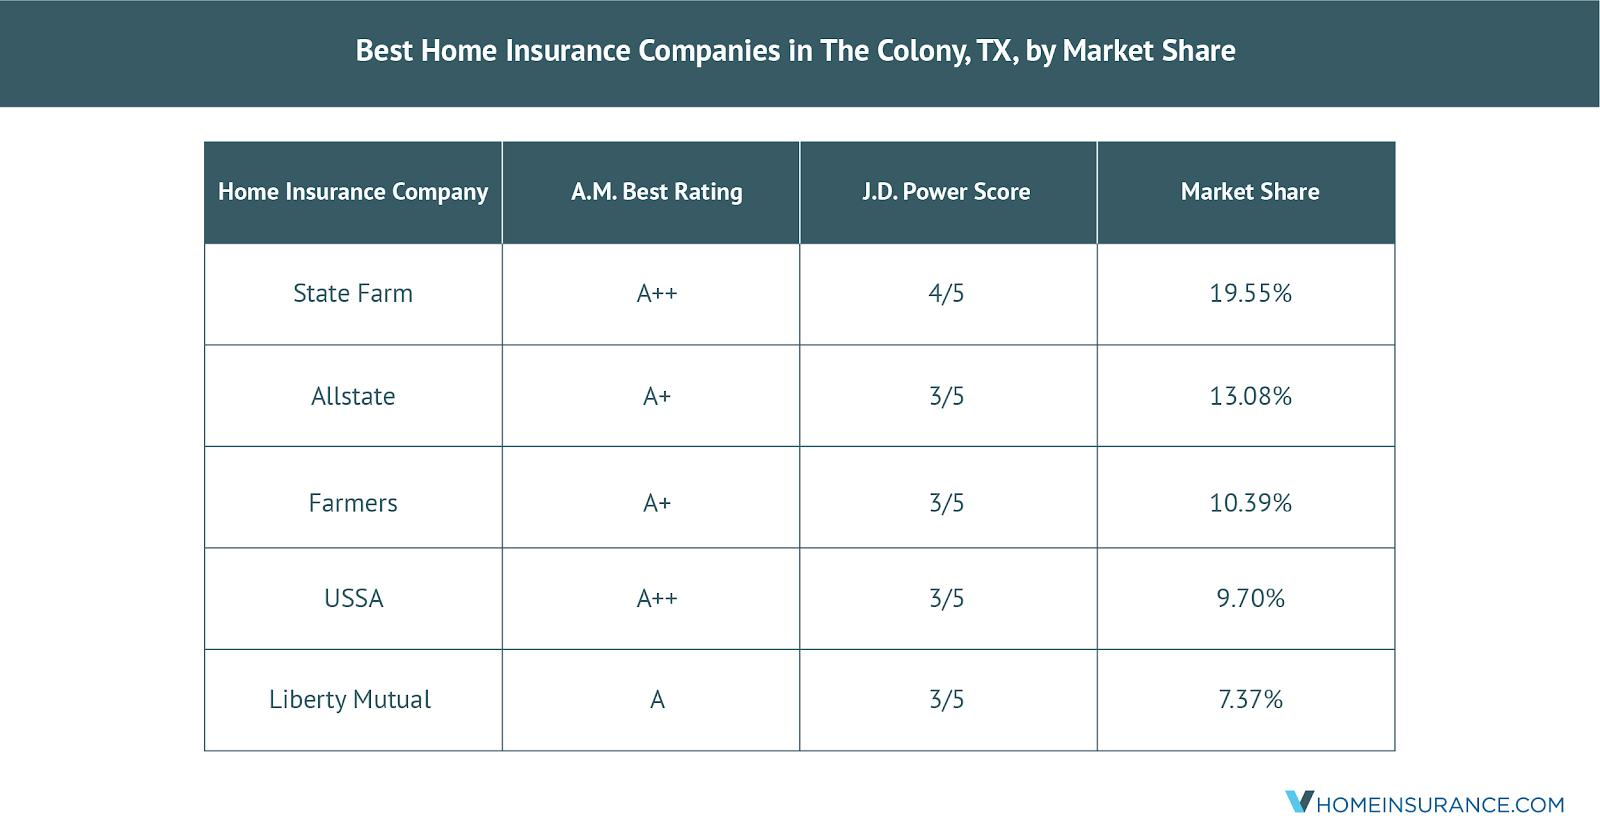 The_Colony_TX_Best_Home_Insurance_Companies